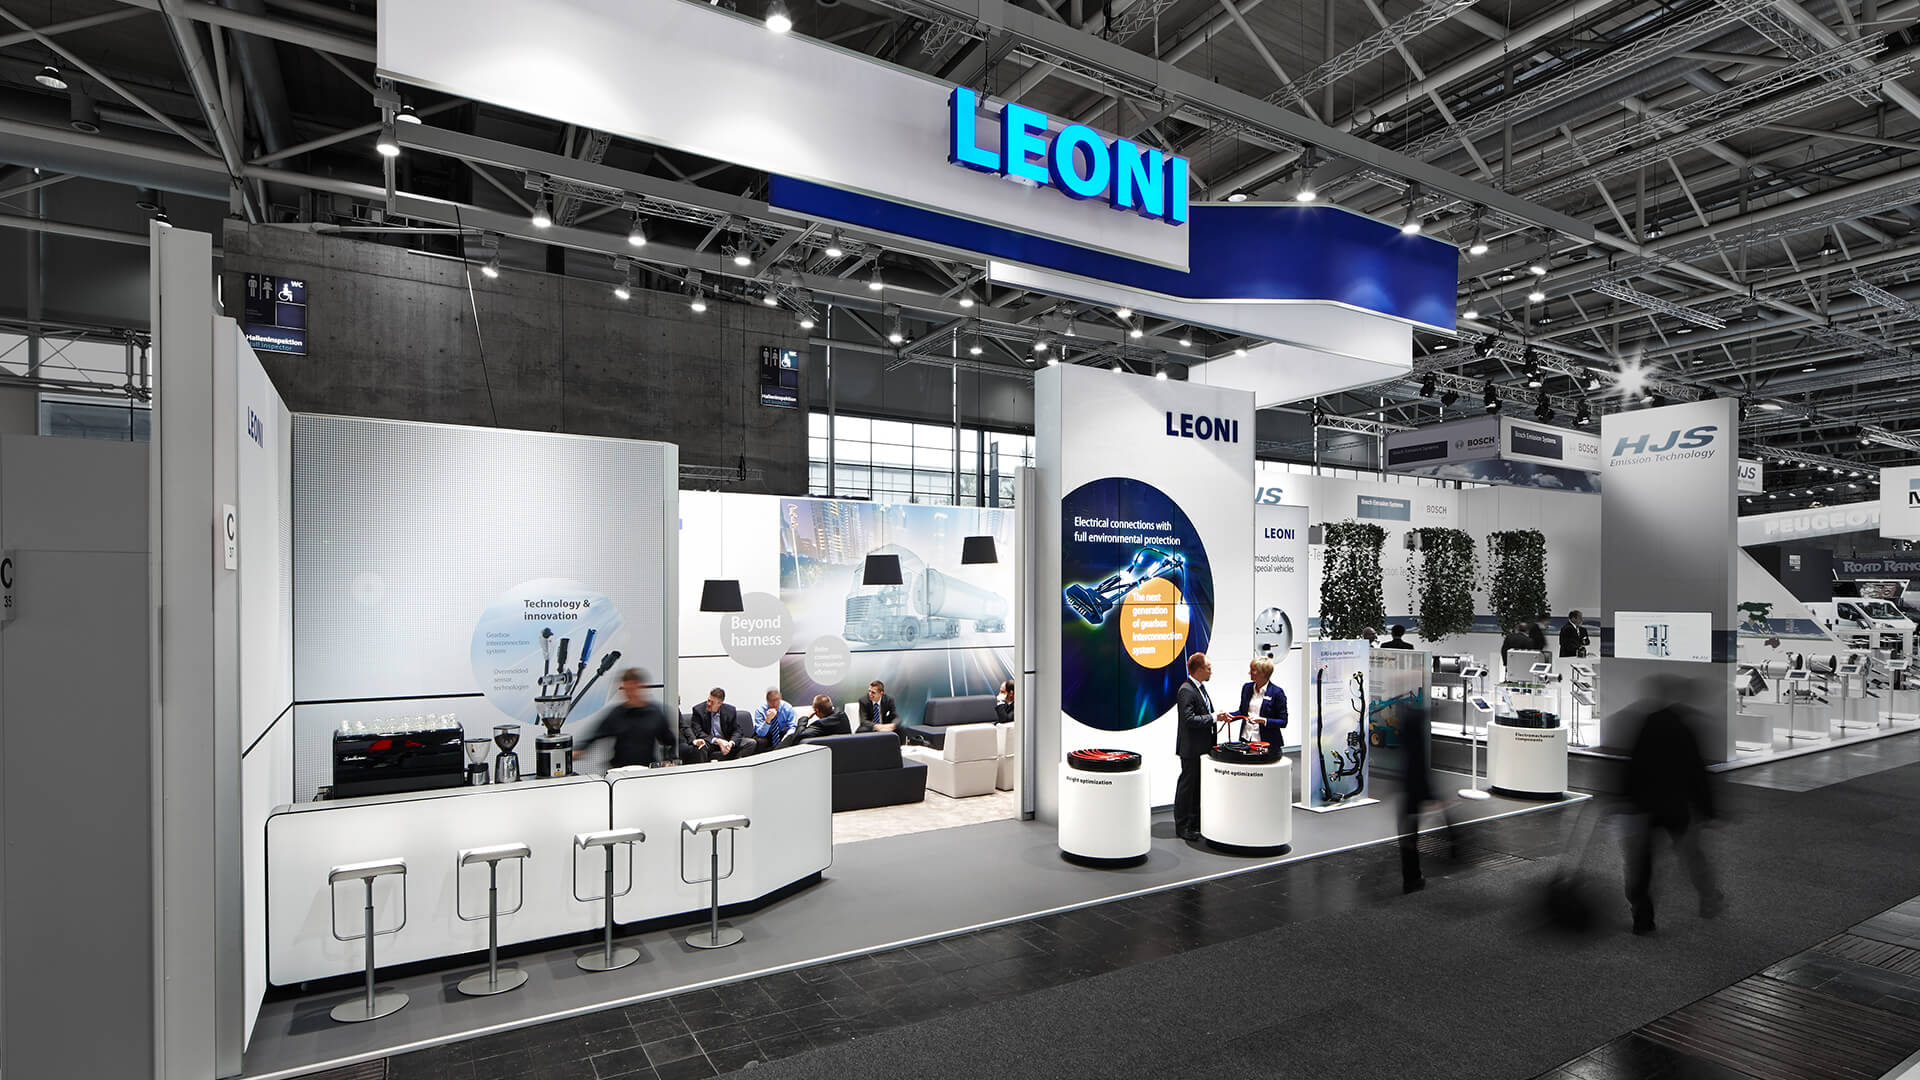 exhibition LEONI at the IAA